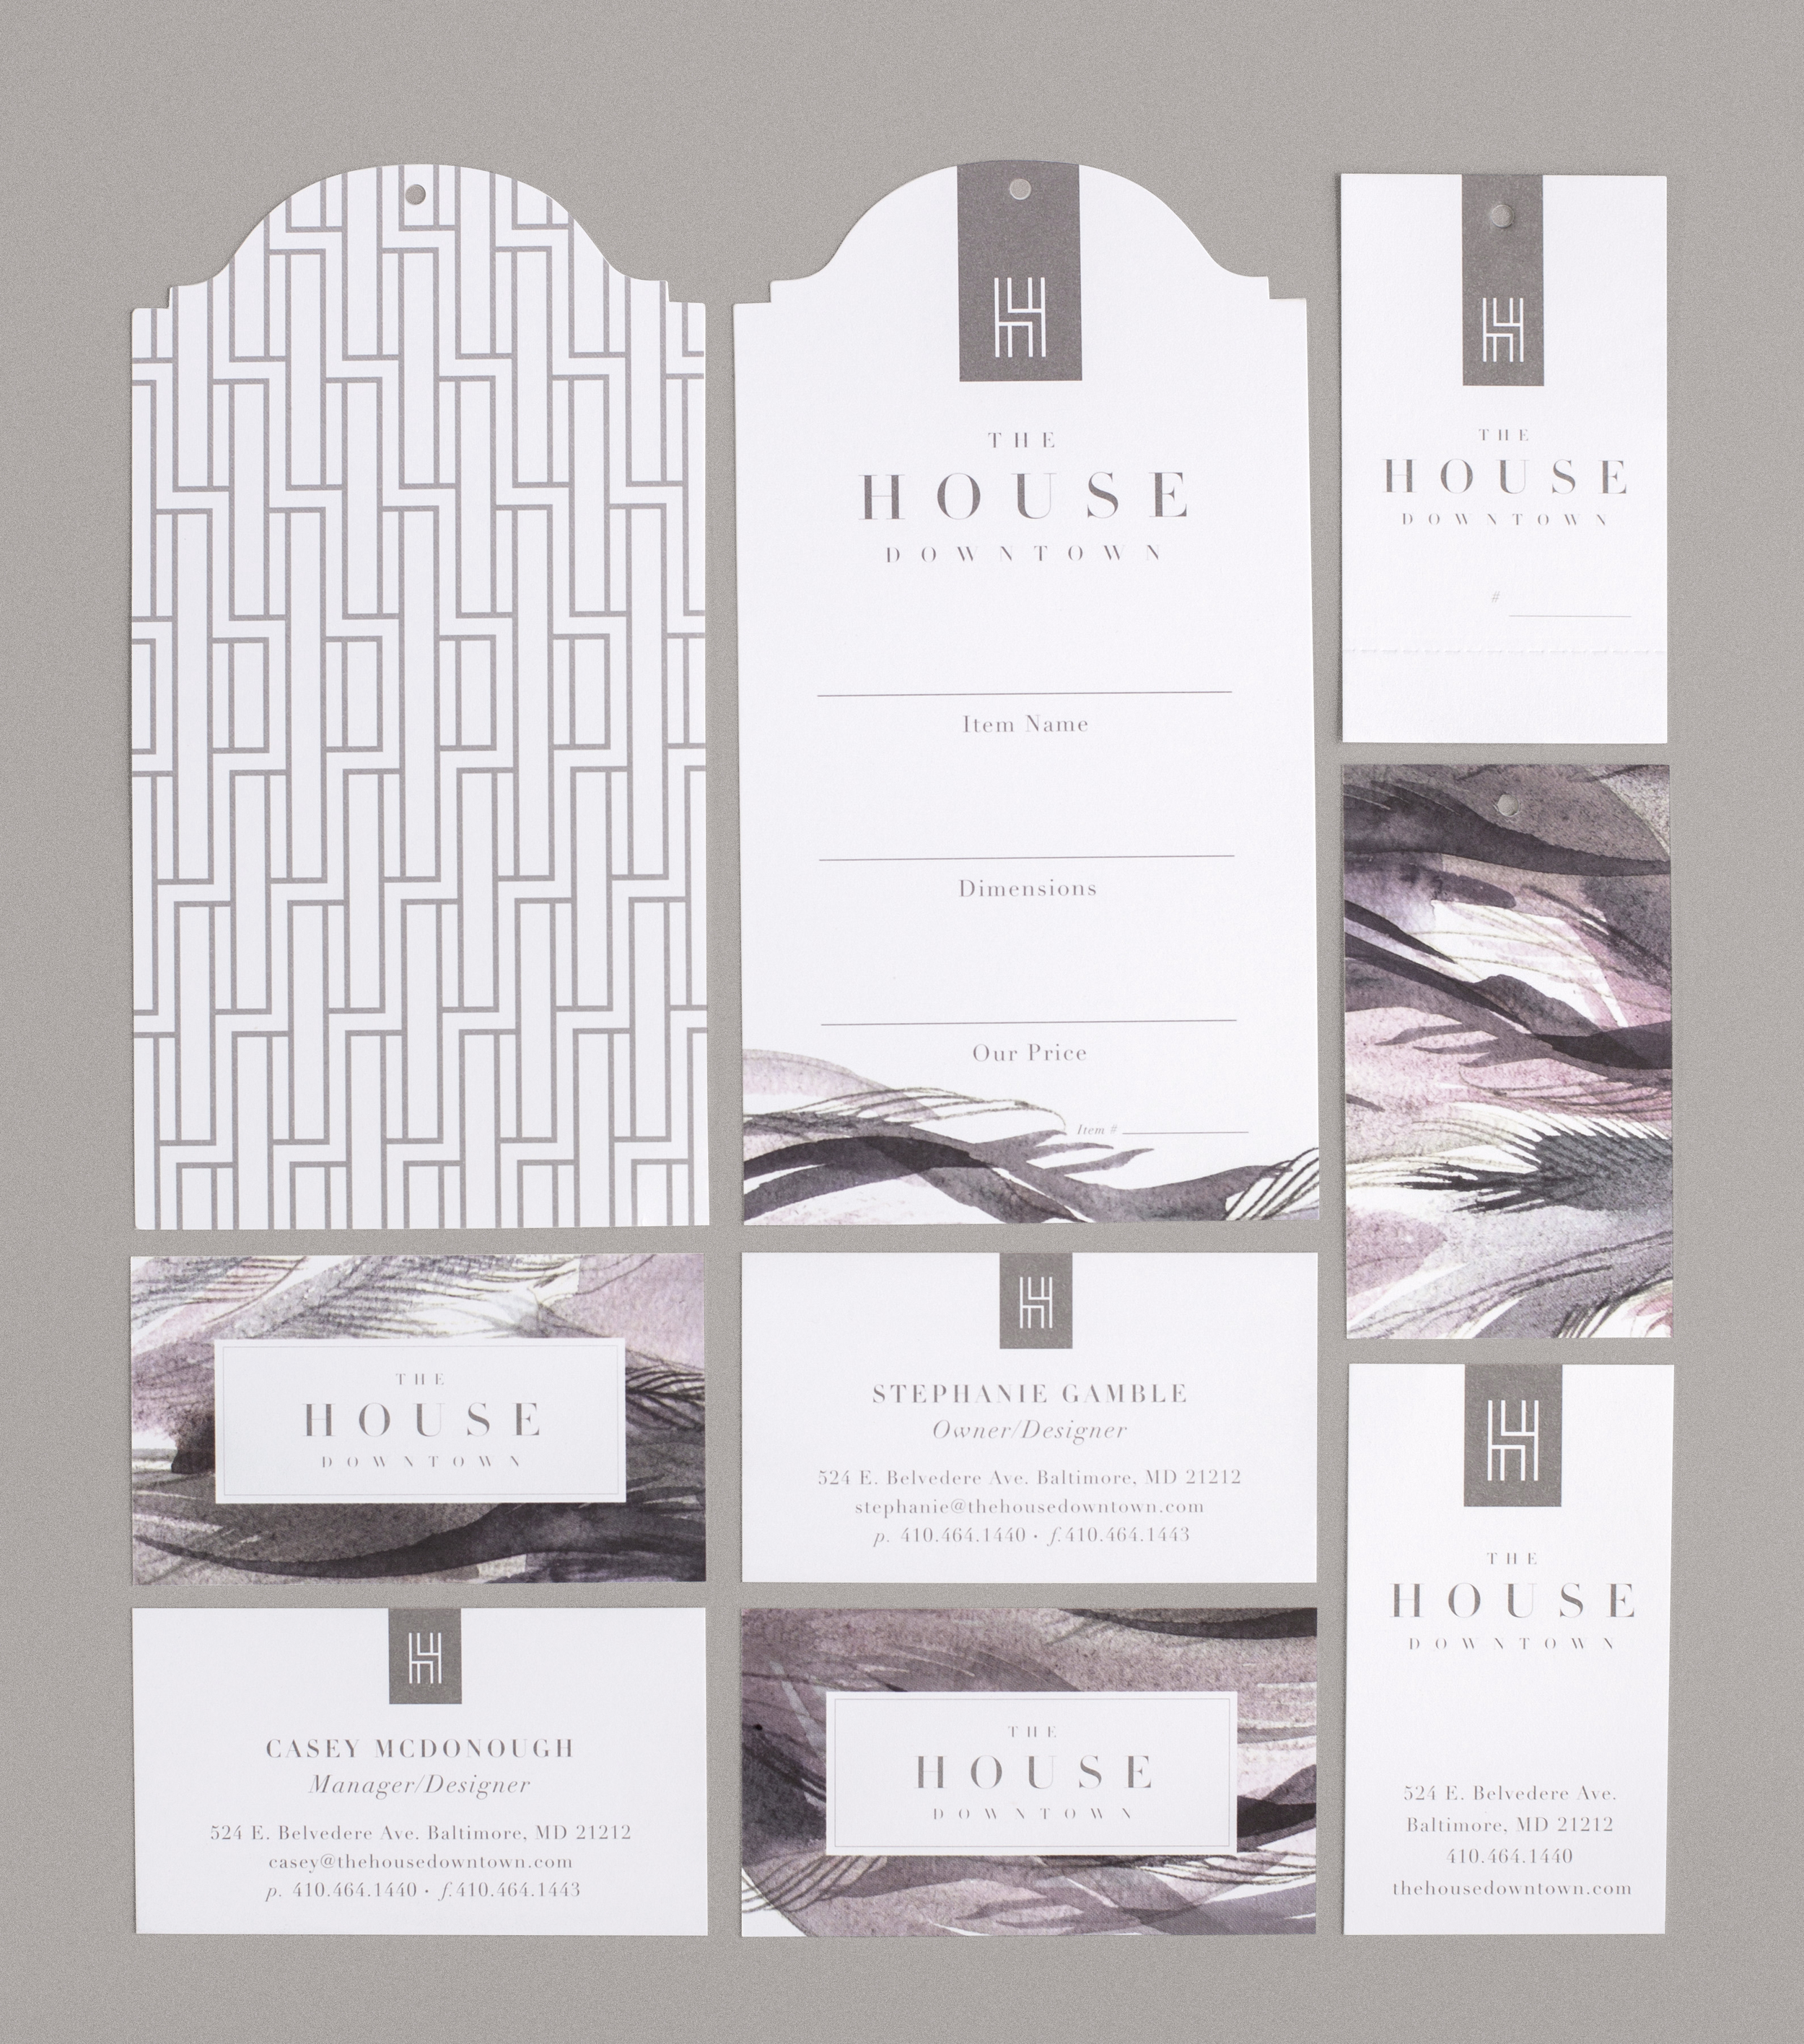 House-Downtown-Furniture-Baltimore-Maryland-Brand-Identity-Graphic-Design.jpg